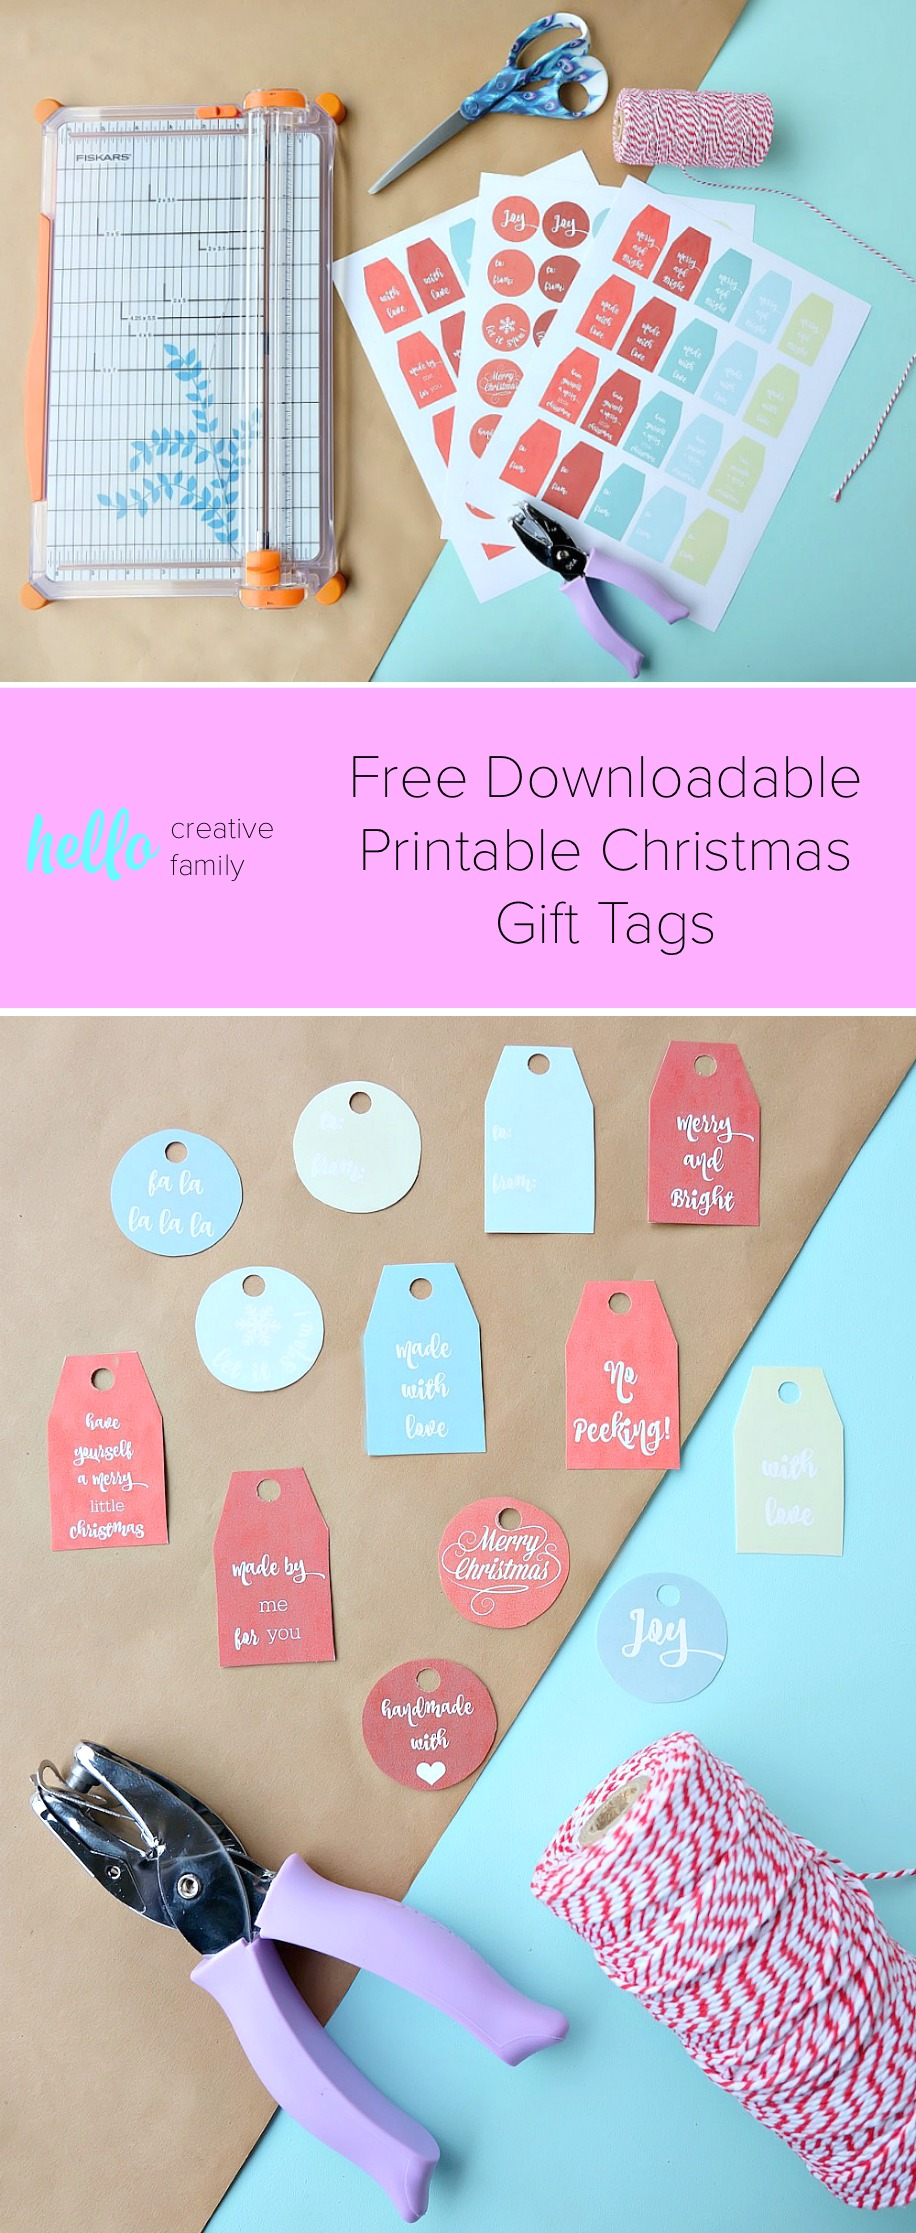 Make your Christmas gifts extra pretty with our vintage inspired, hand lettered free downloadable printable Christmas gift tags! You'll love all of the cute sayings, the pretty colors and how easy it is to add a handmade touch to your Christmas gifts! #Christmas #Printable #GiftTags #Free #Handlettered